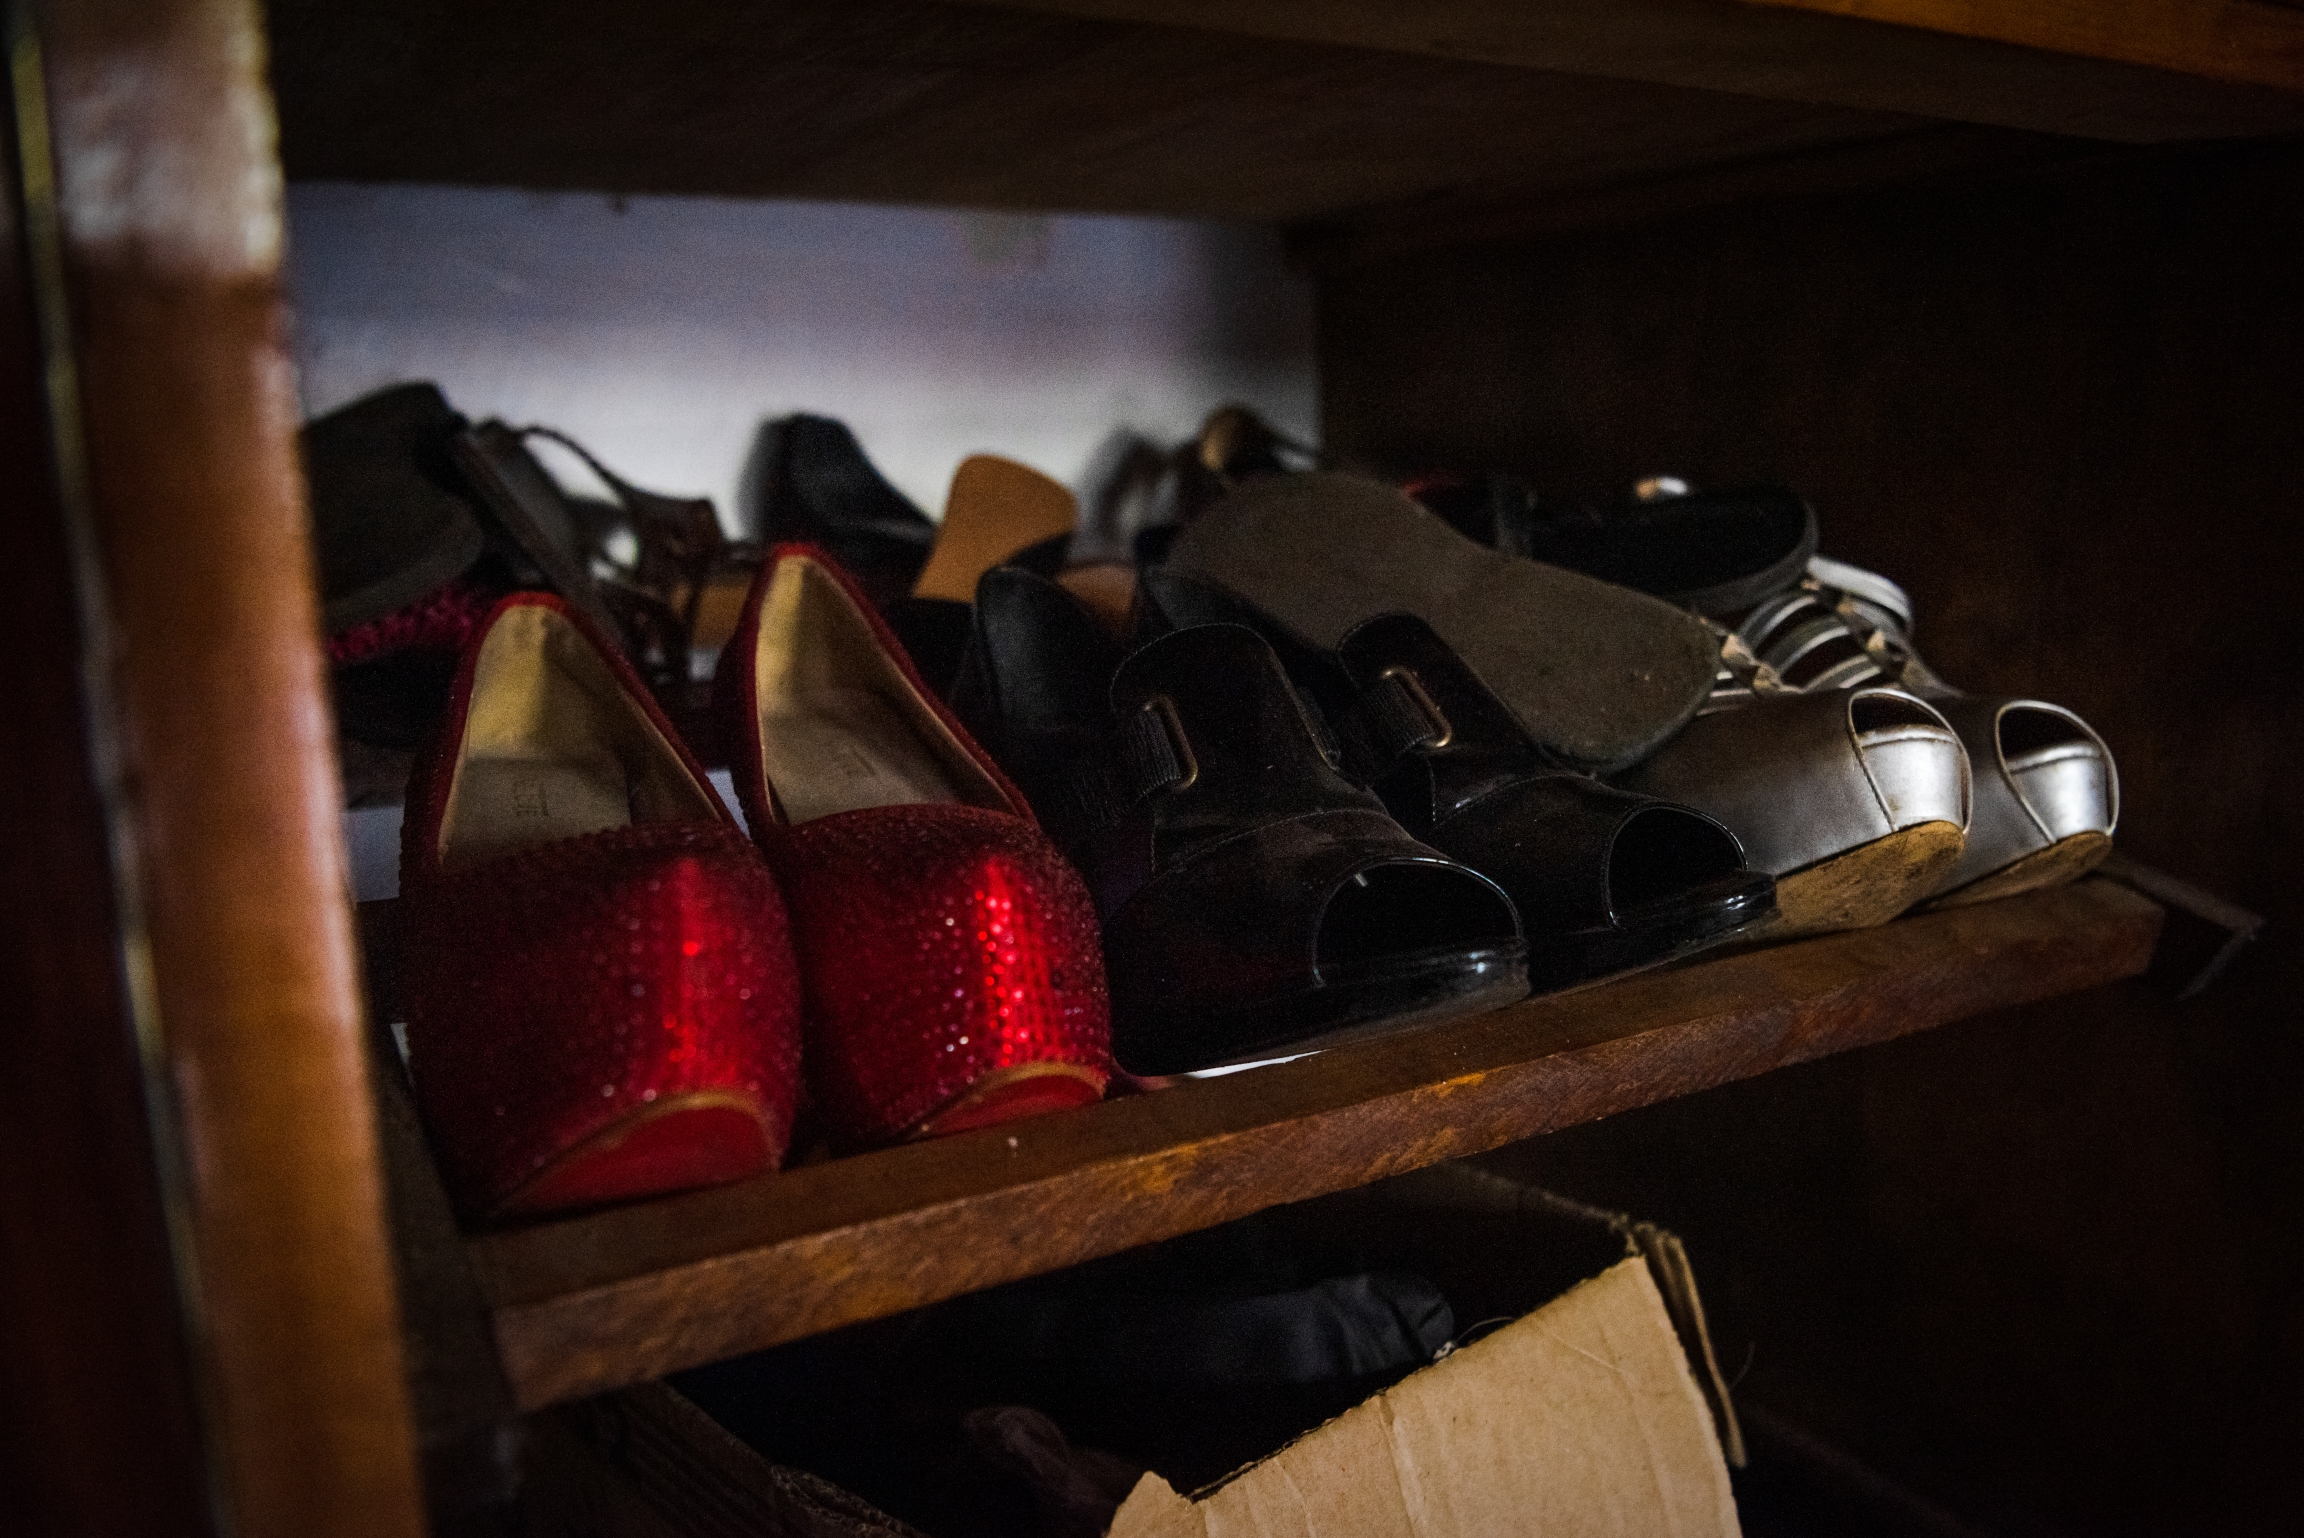 A row of high heeled shoes in red and black